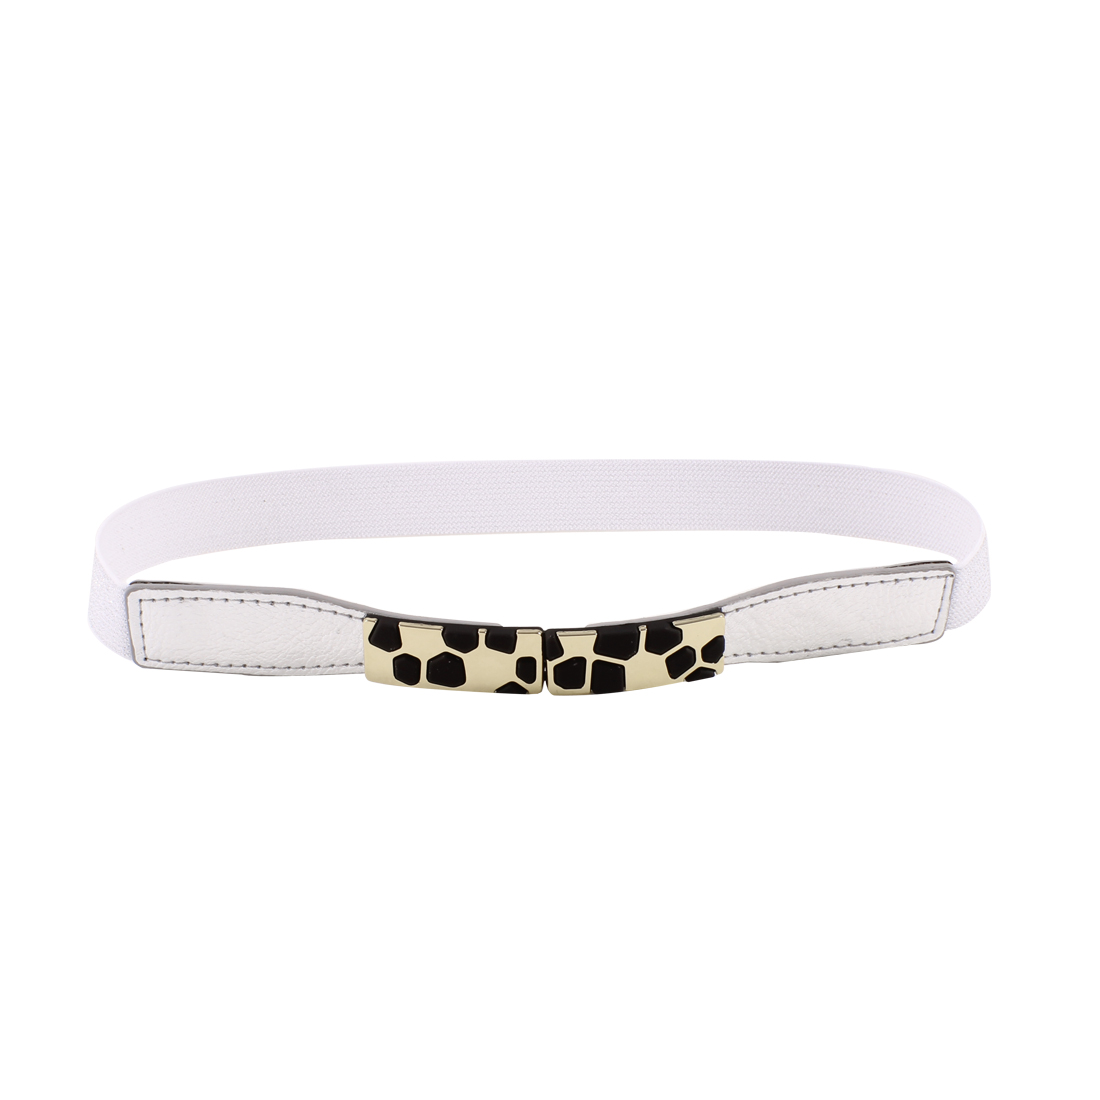 Block Design Metal Interlocking Buckle Elastic Waist Belt Silver Tone for Ladies